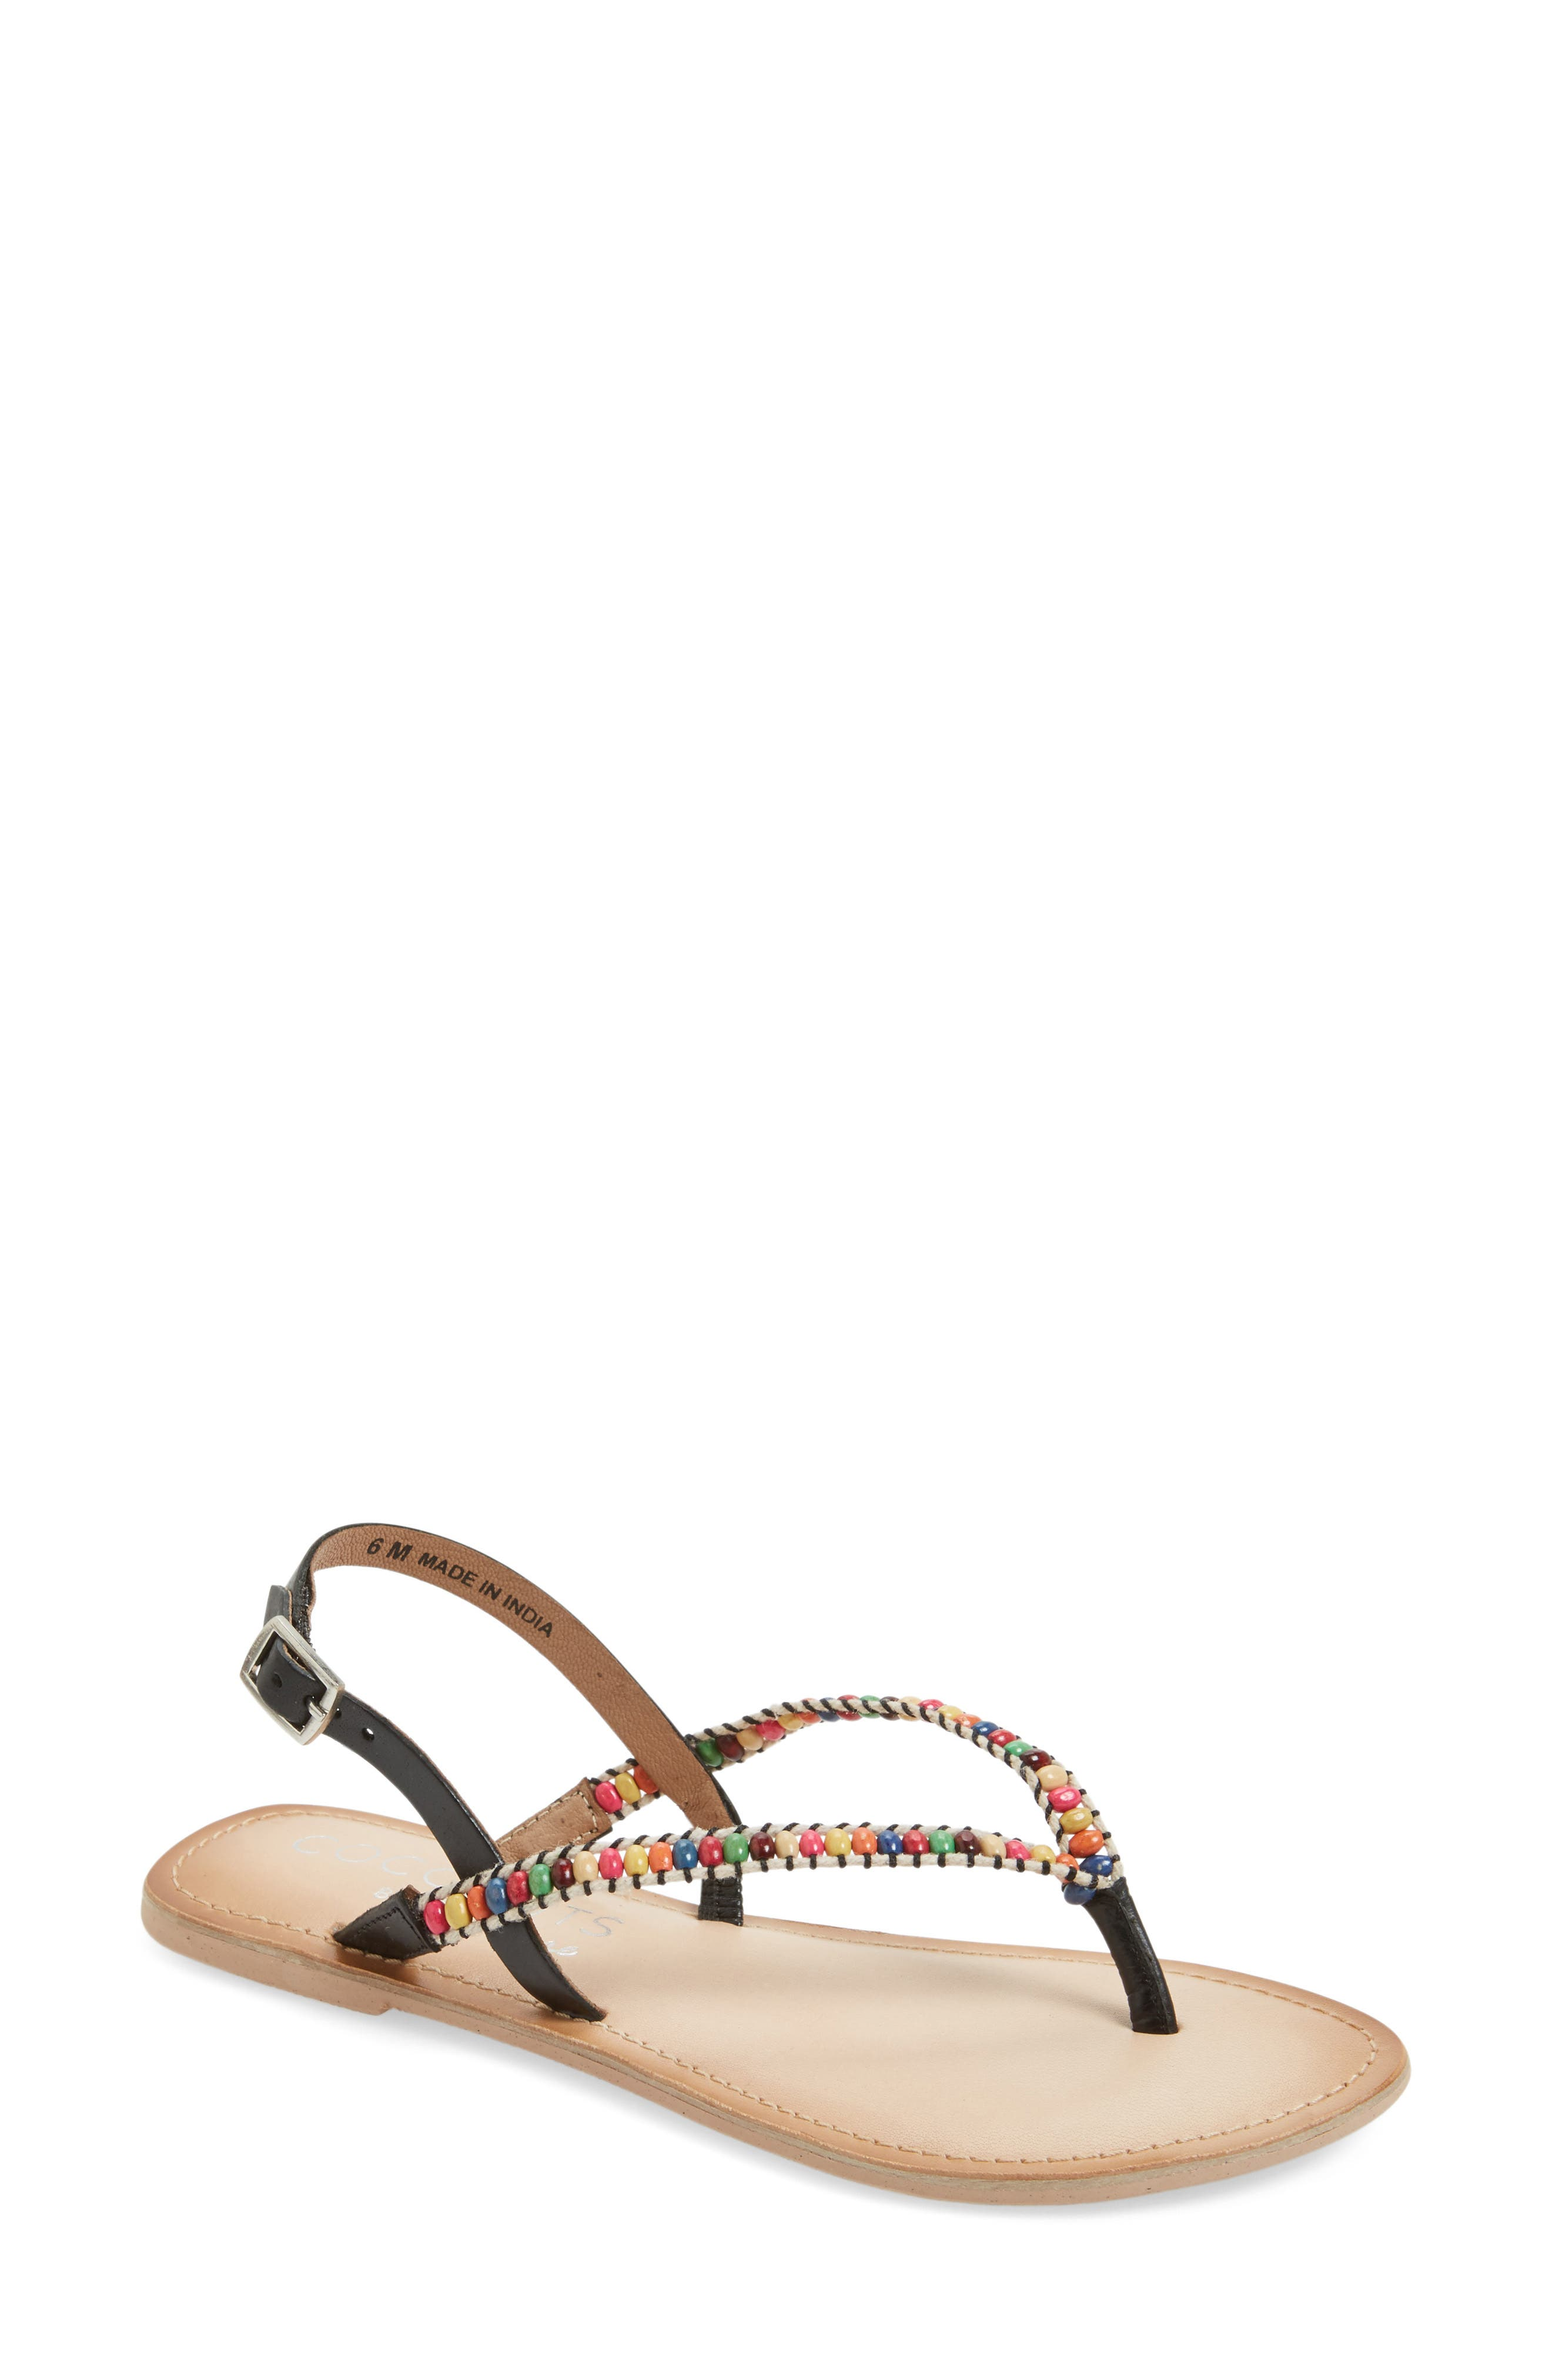 Coconuts by Matisse Celebration Beaded Sandal,                             Main thumbnail 1, color,                             001